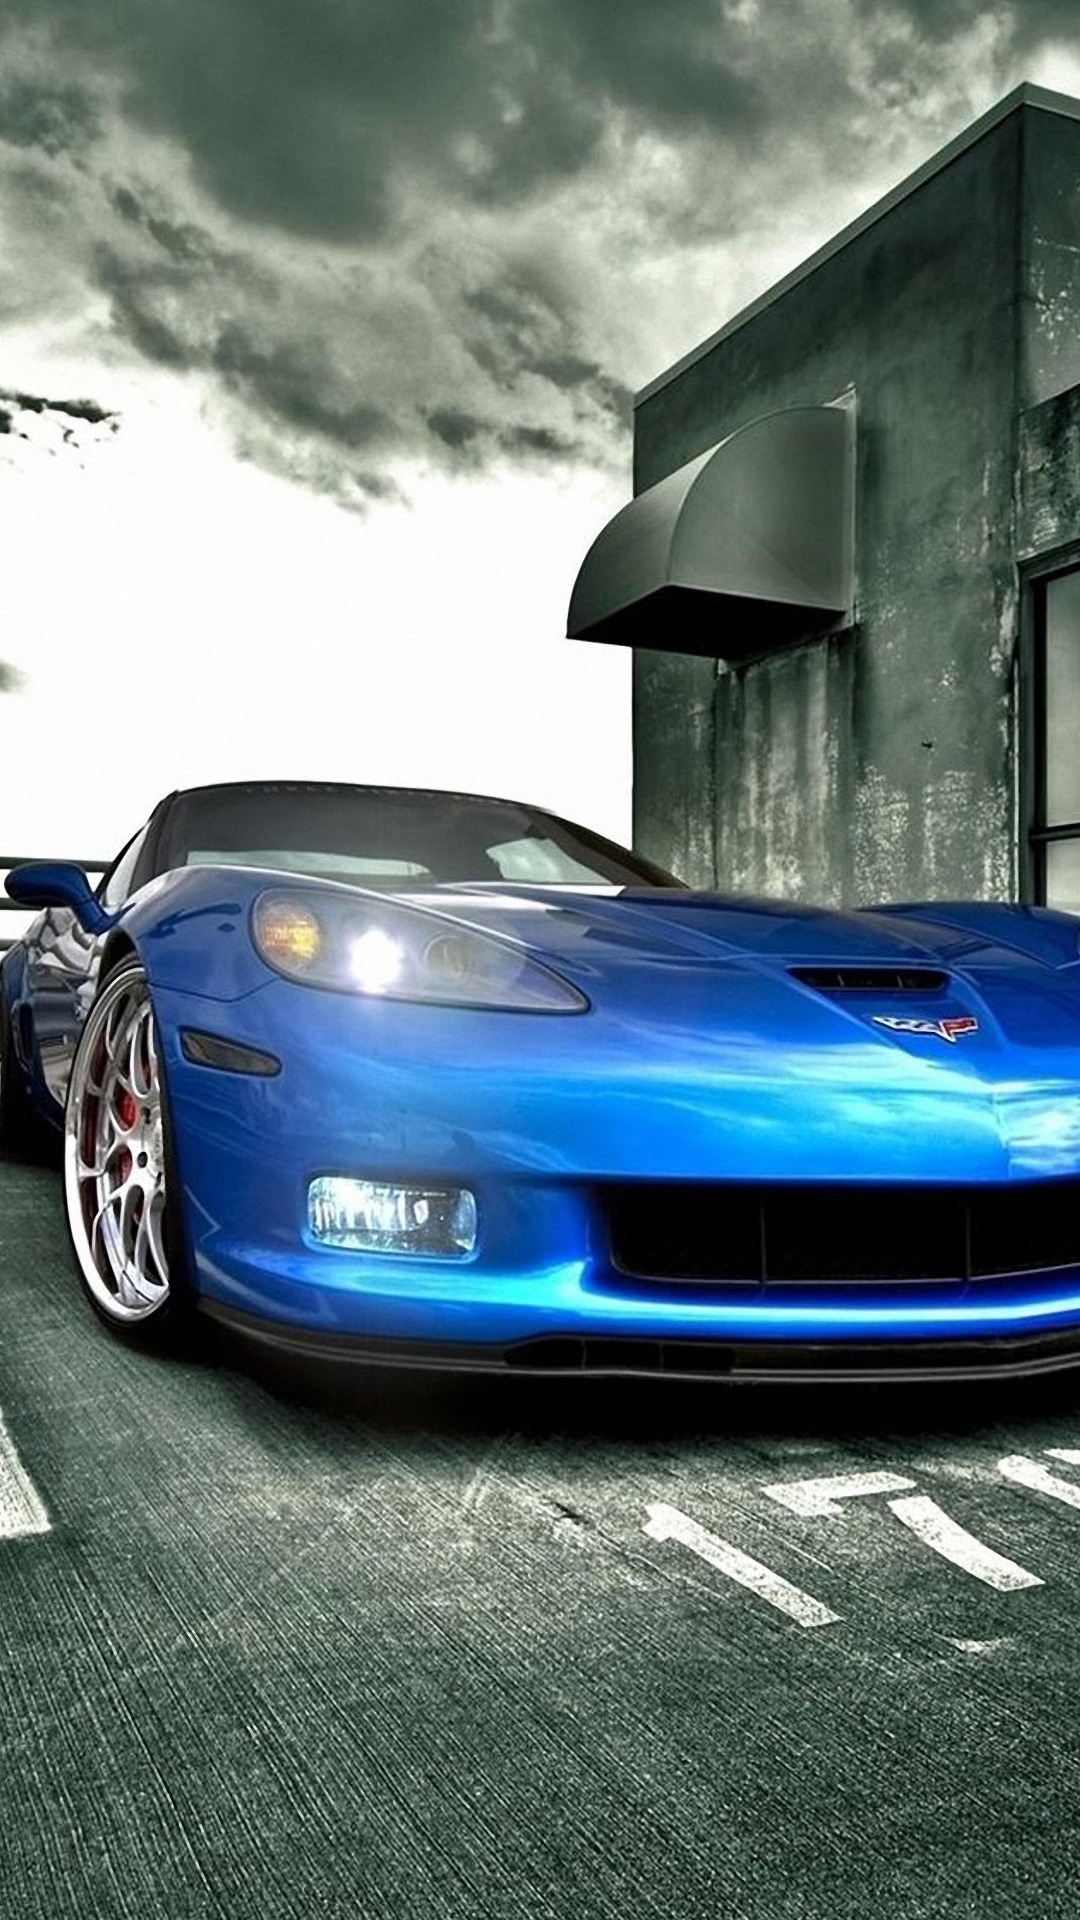 Best-cars-hd-1080x1920-for-htc-one-wallpaper-wp360179